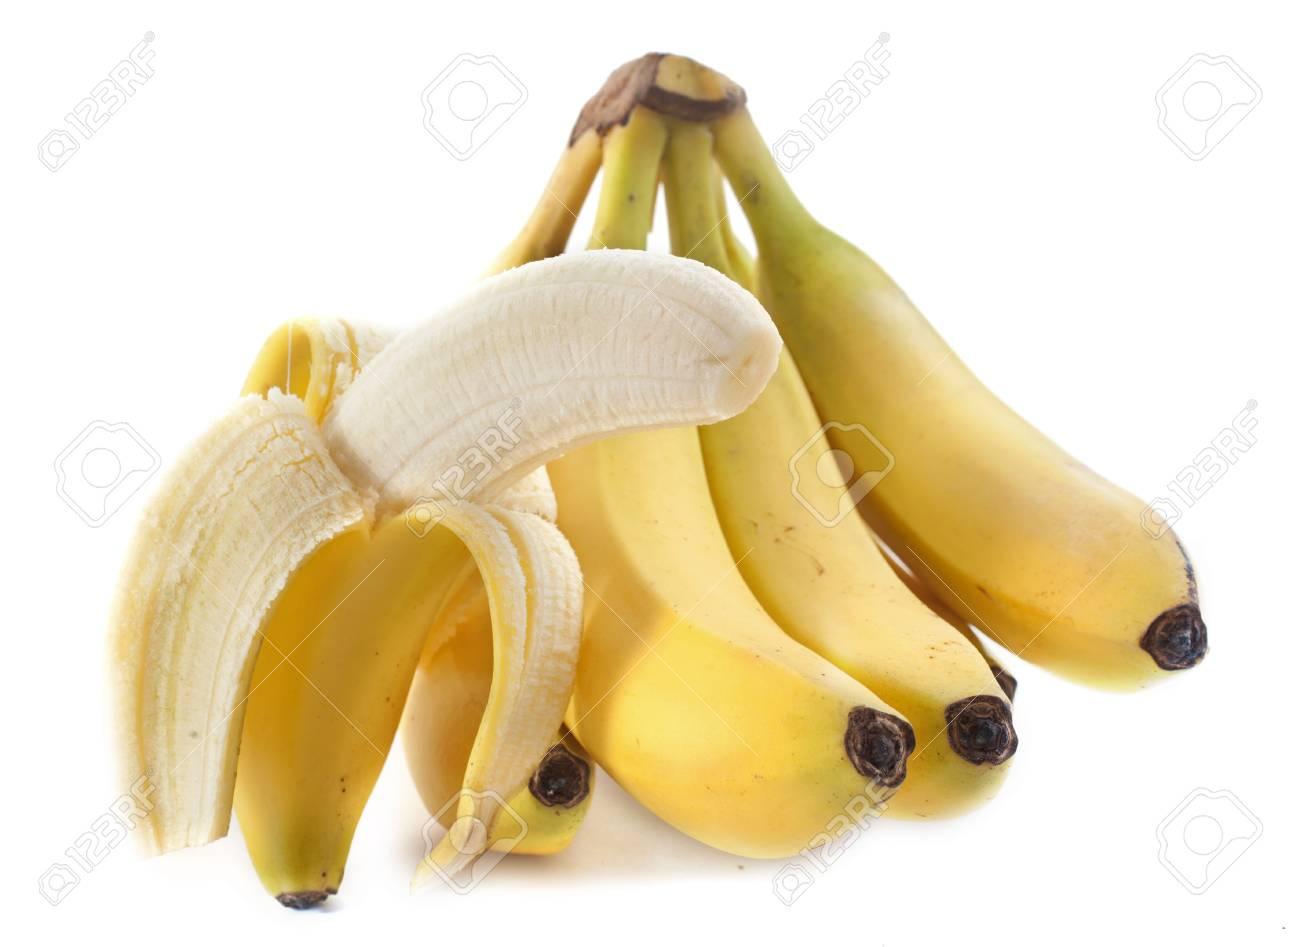 bunch of bananas in front of white background Stock Photo - 23580153